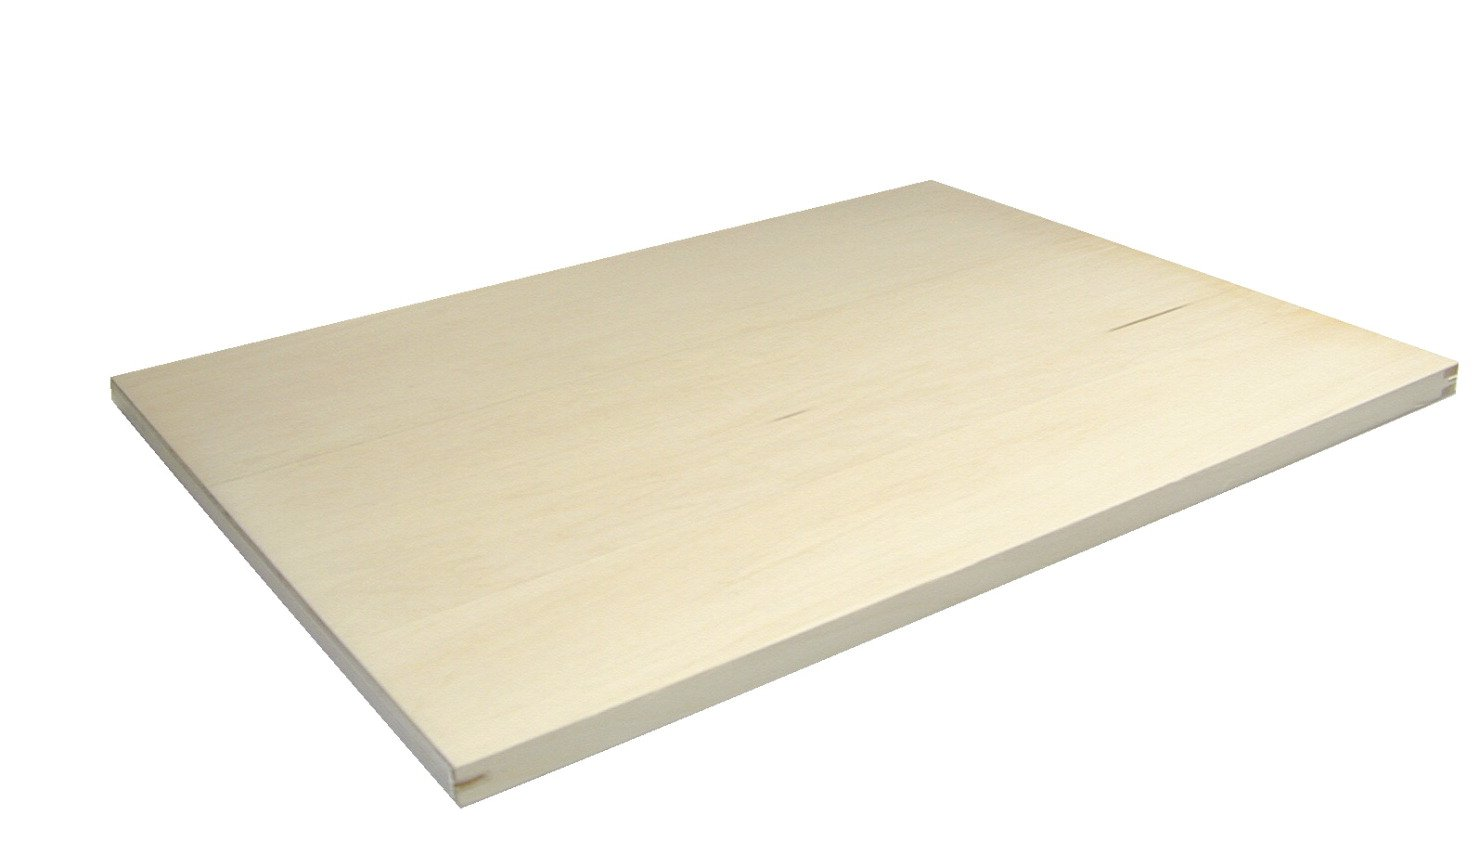 Alvin DB116 DB Series Drawing Board / Tabletop 20 inches x 26 inches by Alvin